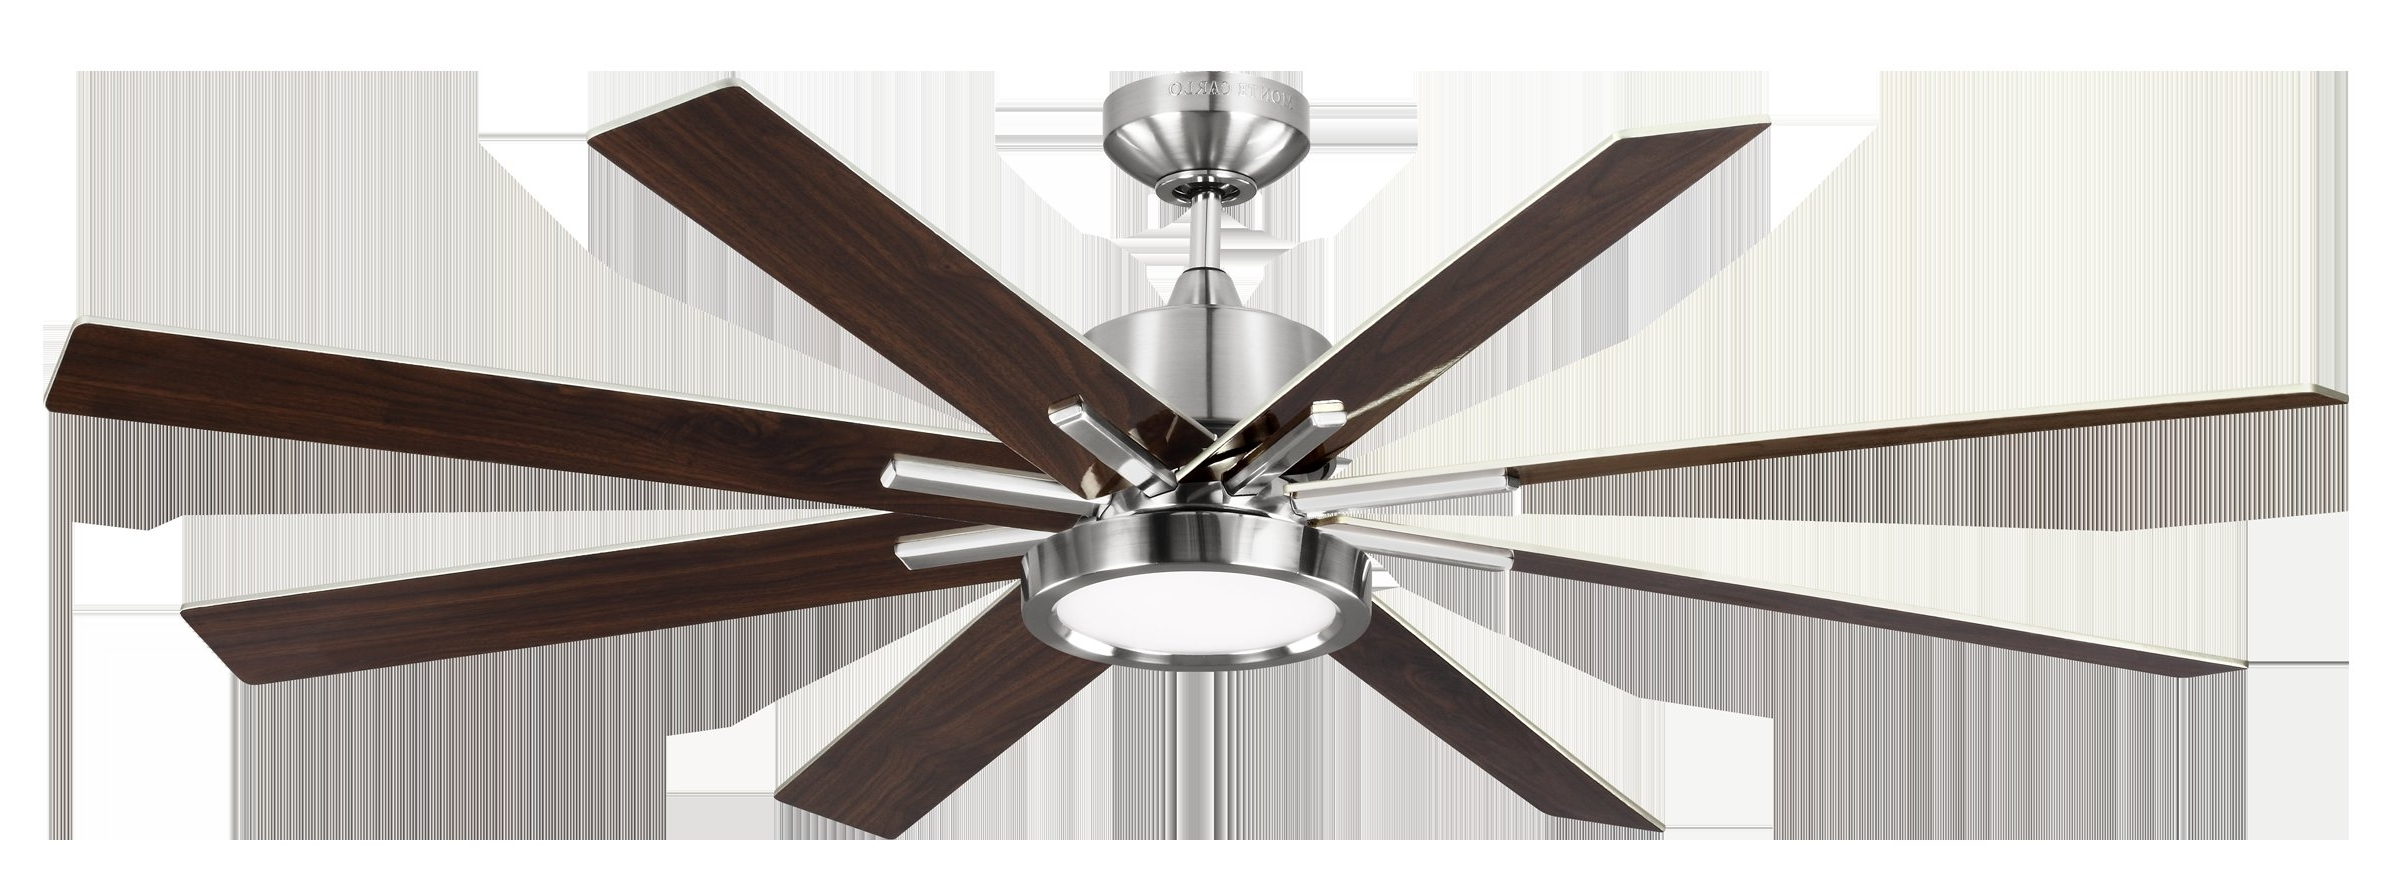 "Popular Outdoor Ceiling Fans With Remote With Regard To Wade Logan 60"" Woodlynne 8 Blade Outdoor Ceiling Fan With Remote (Gallery 8 of 20)"